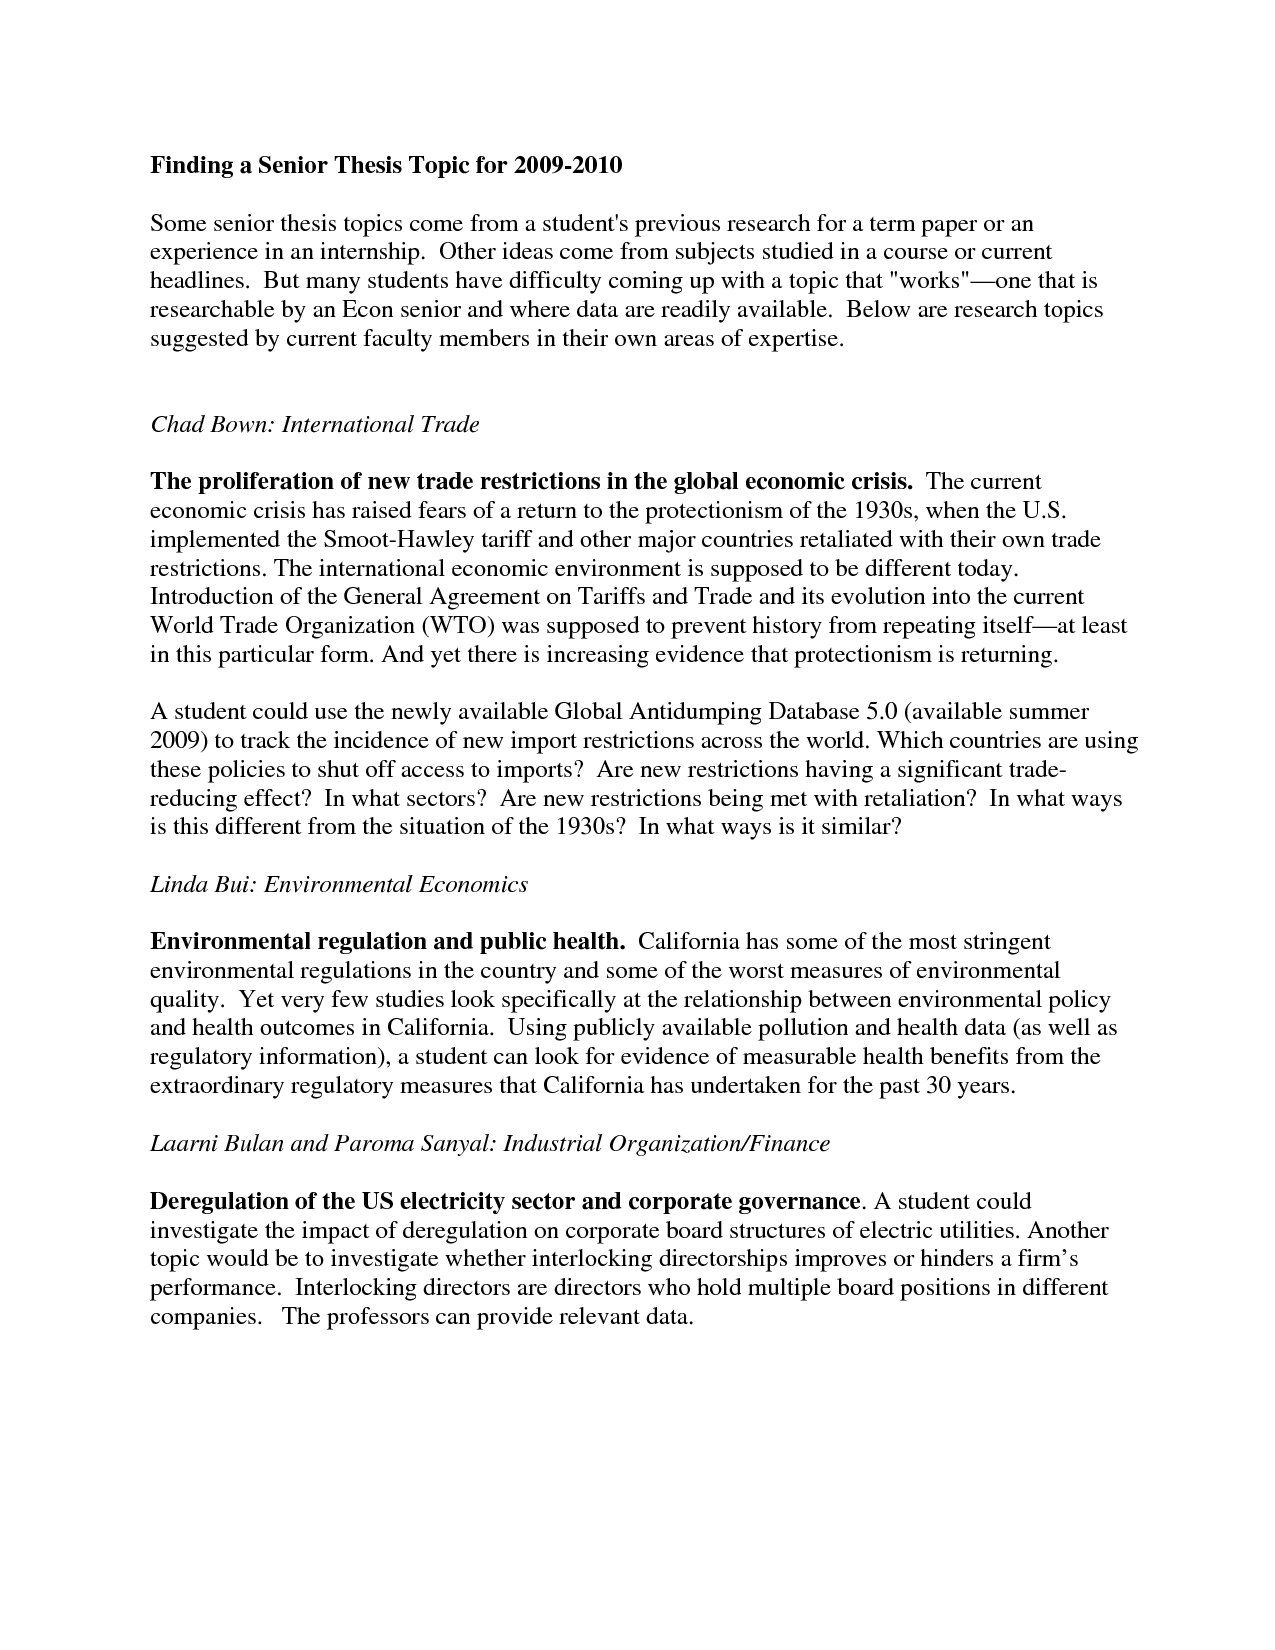 018 Interesting Research Paper Topic Ideas High School 384737 Dreaded For Highschool Students College Full